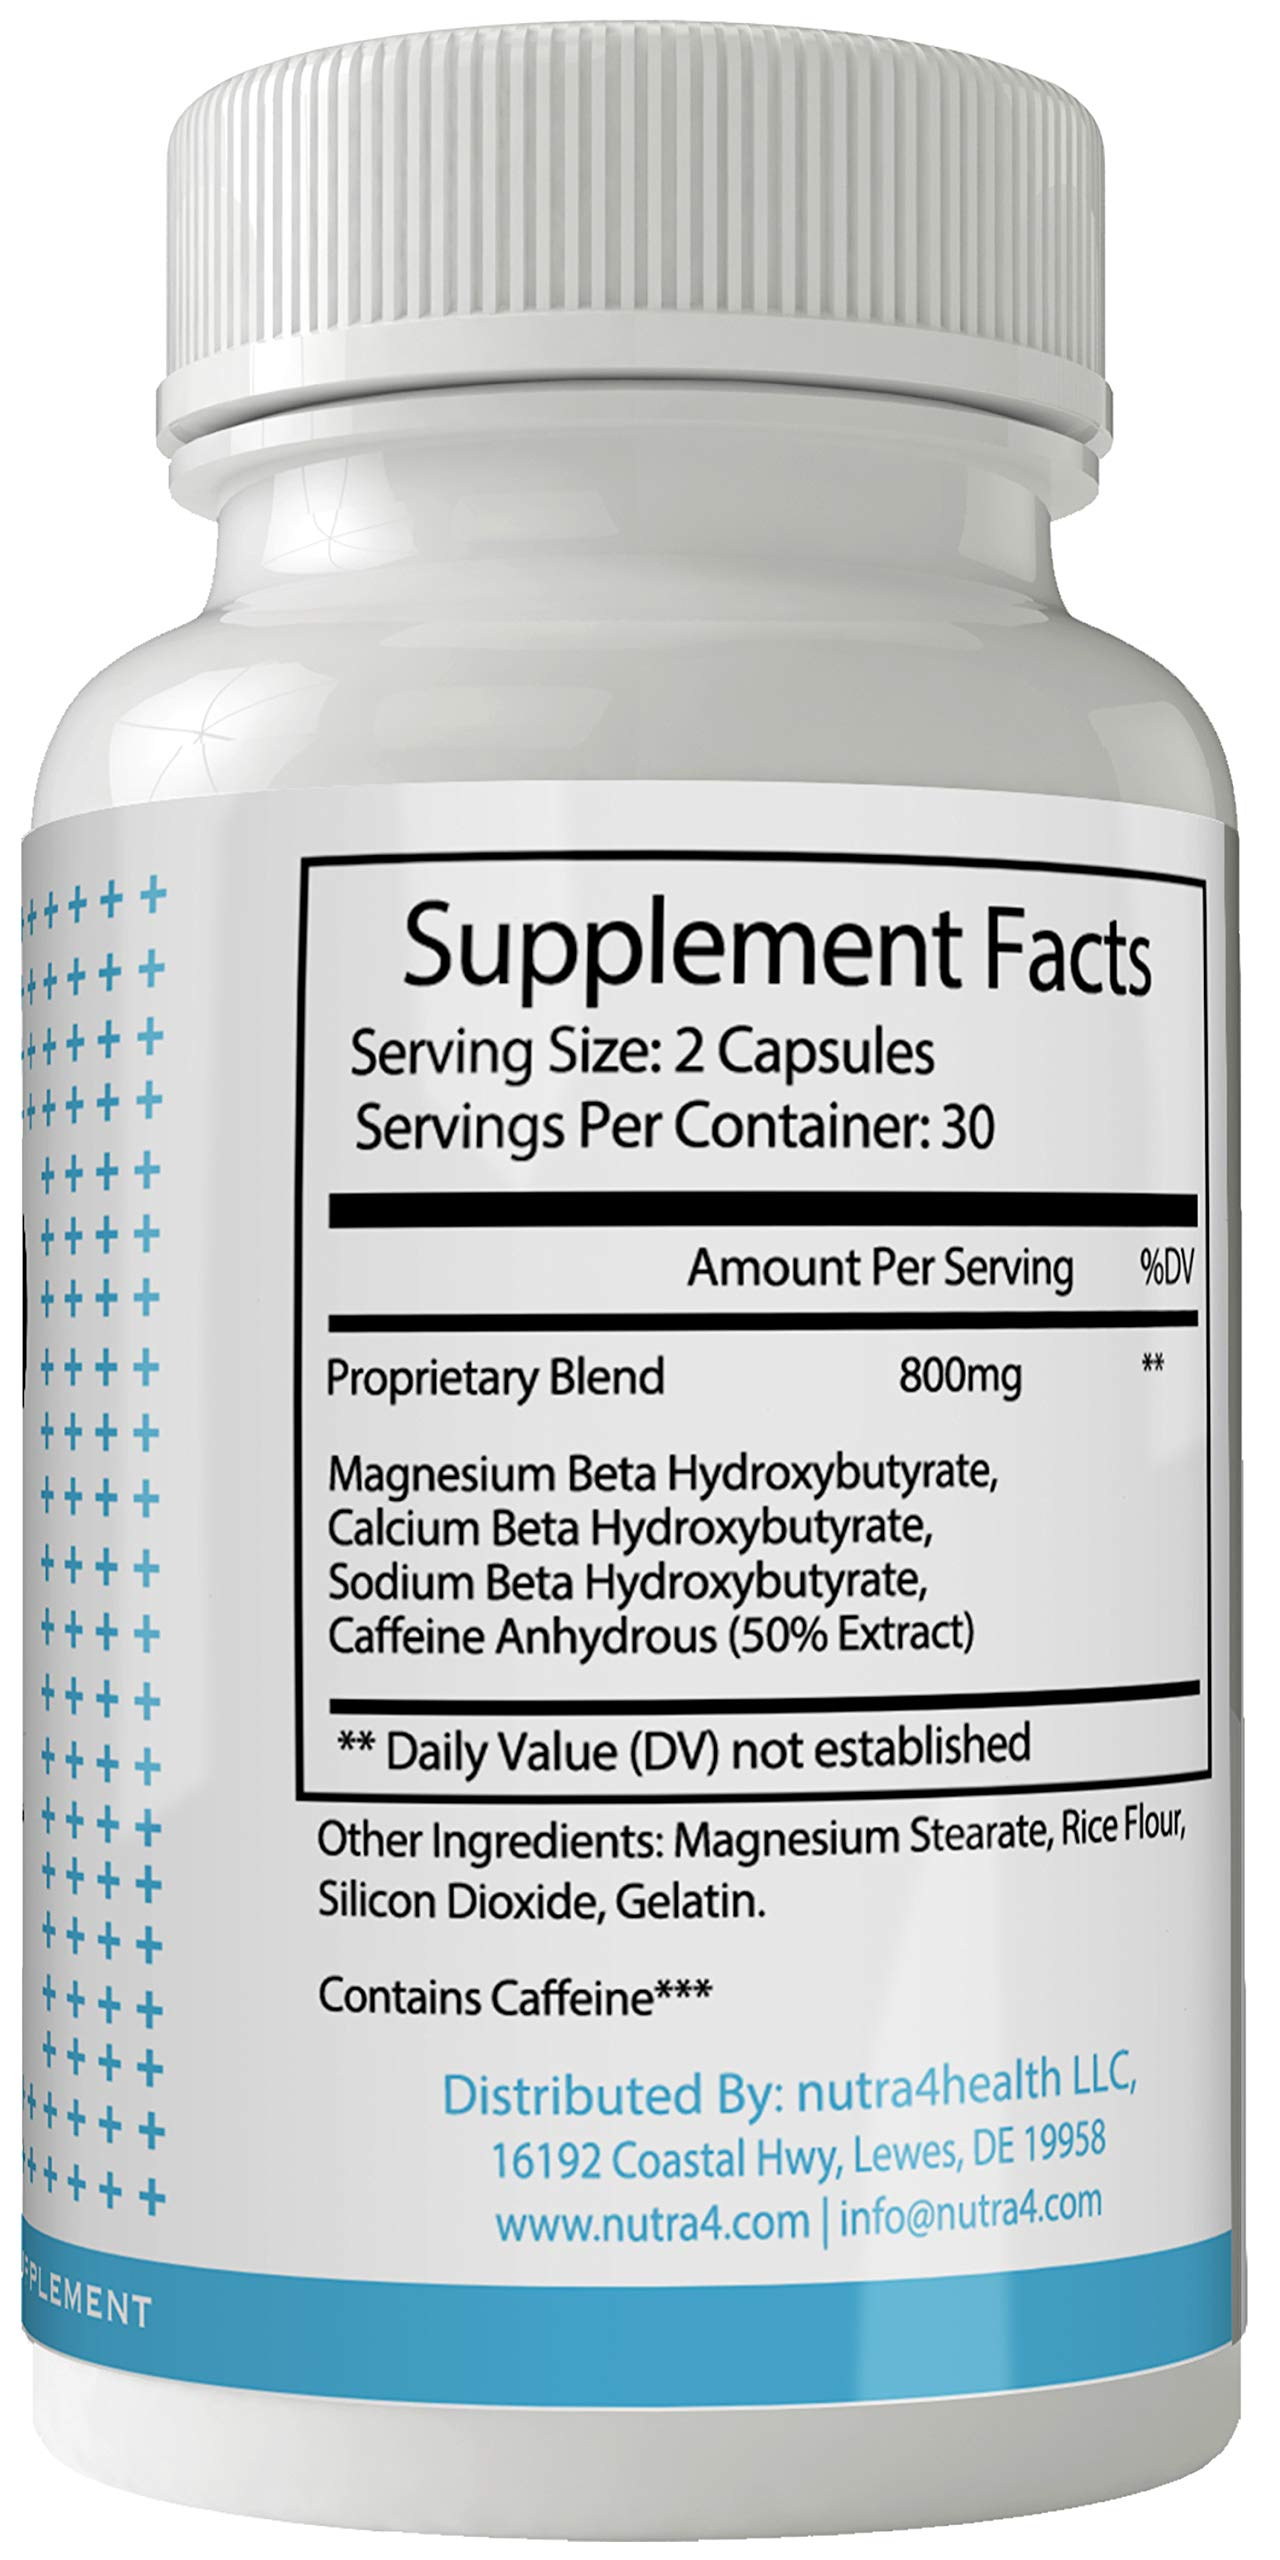 Keto Fuel Weight Loss Pills Advance Weight Loss Supplement Appetite Suppressant Natural Ketogenic 800 mg Formula with BHB Salts Ketone Diet Capsules to Boost Metabolism, Energy and Focus by nutra4health LLC (Image #2)